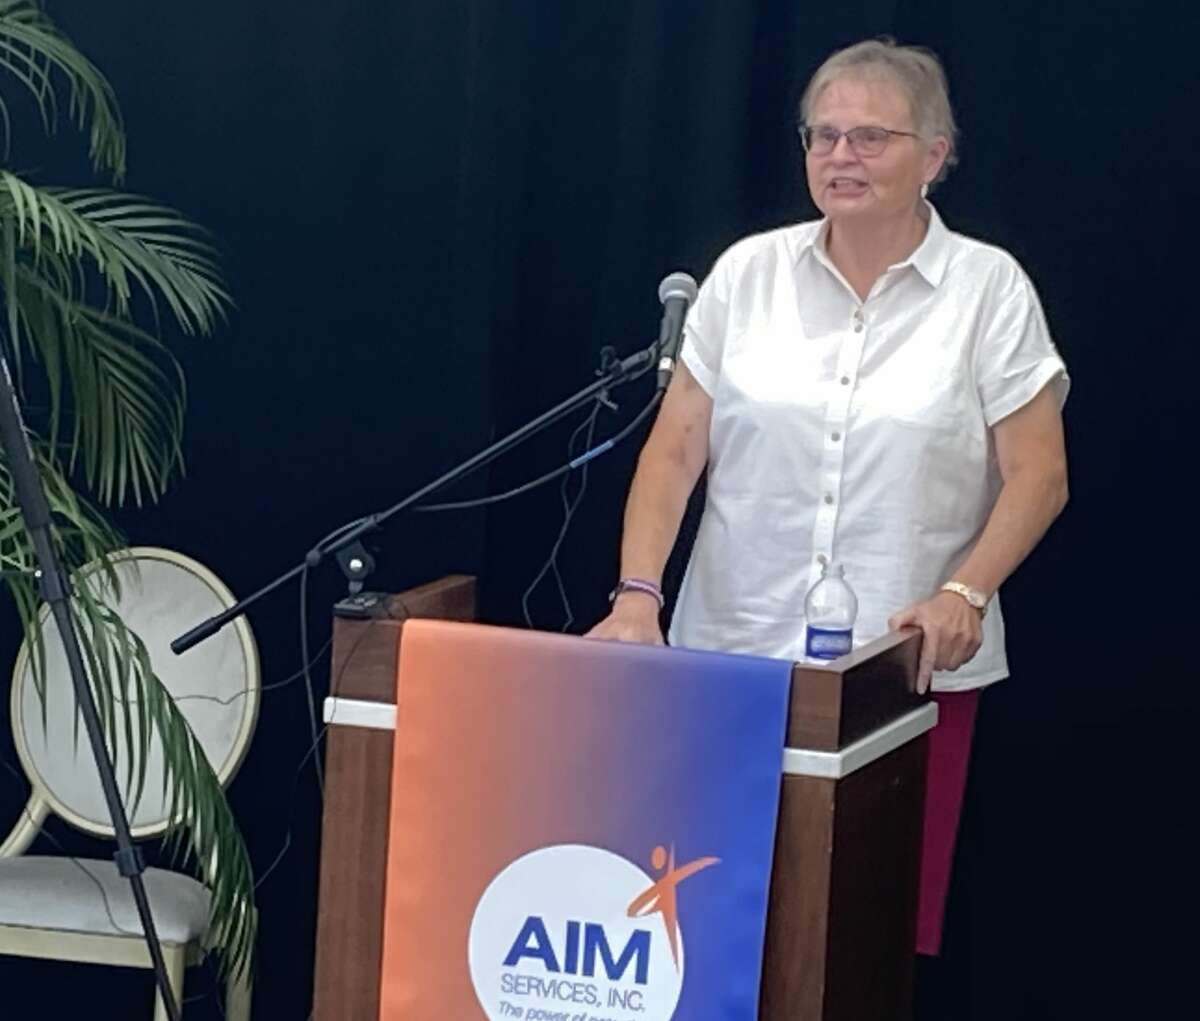 June MacClelland of AIM Services speaks at a press conference in Saratoga Springs on July 27, 2020. (Wendy Liberatore/Times Union)